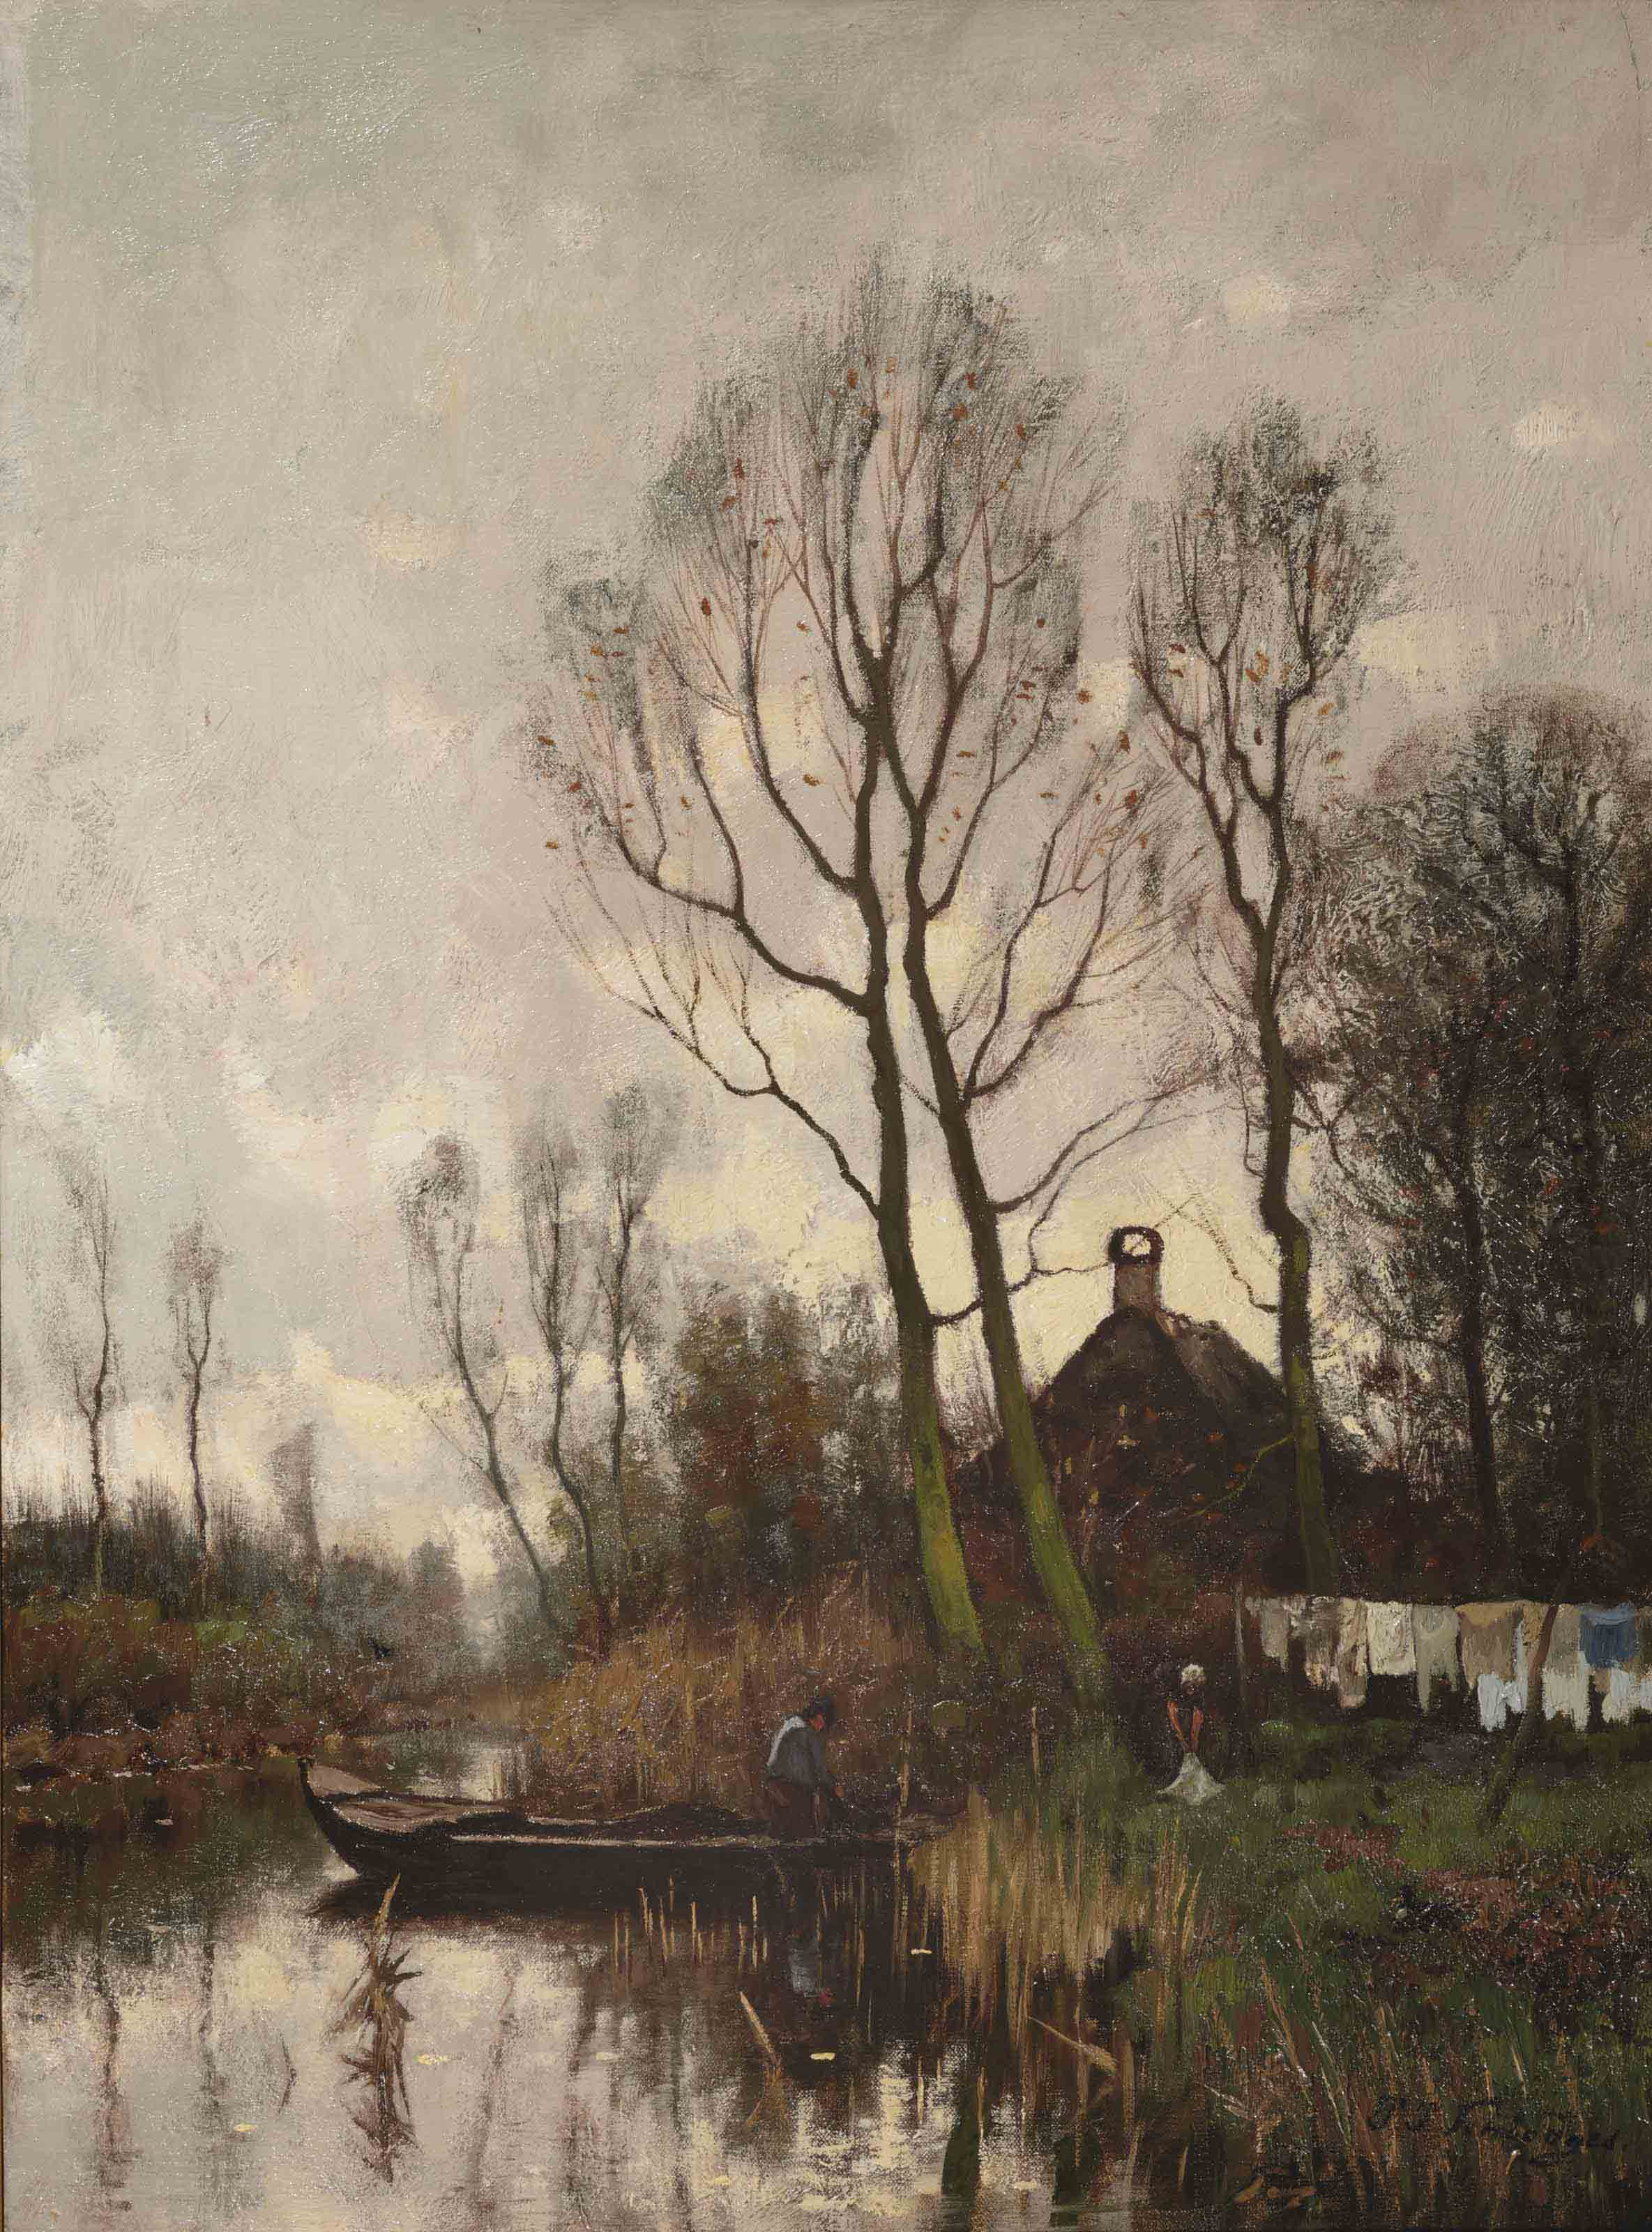 Daily activities along a river in an autumn landscape